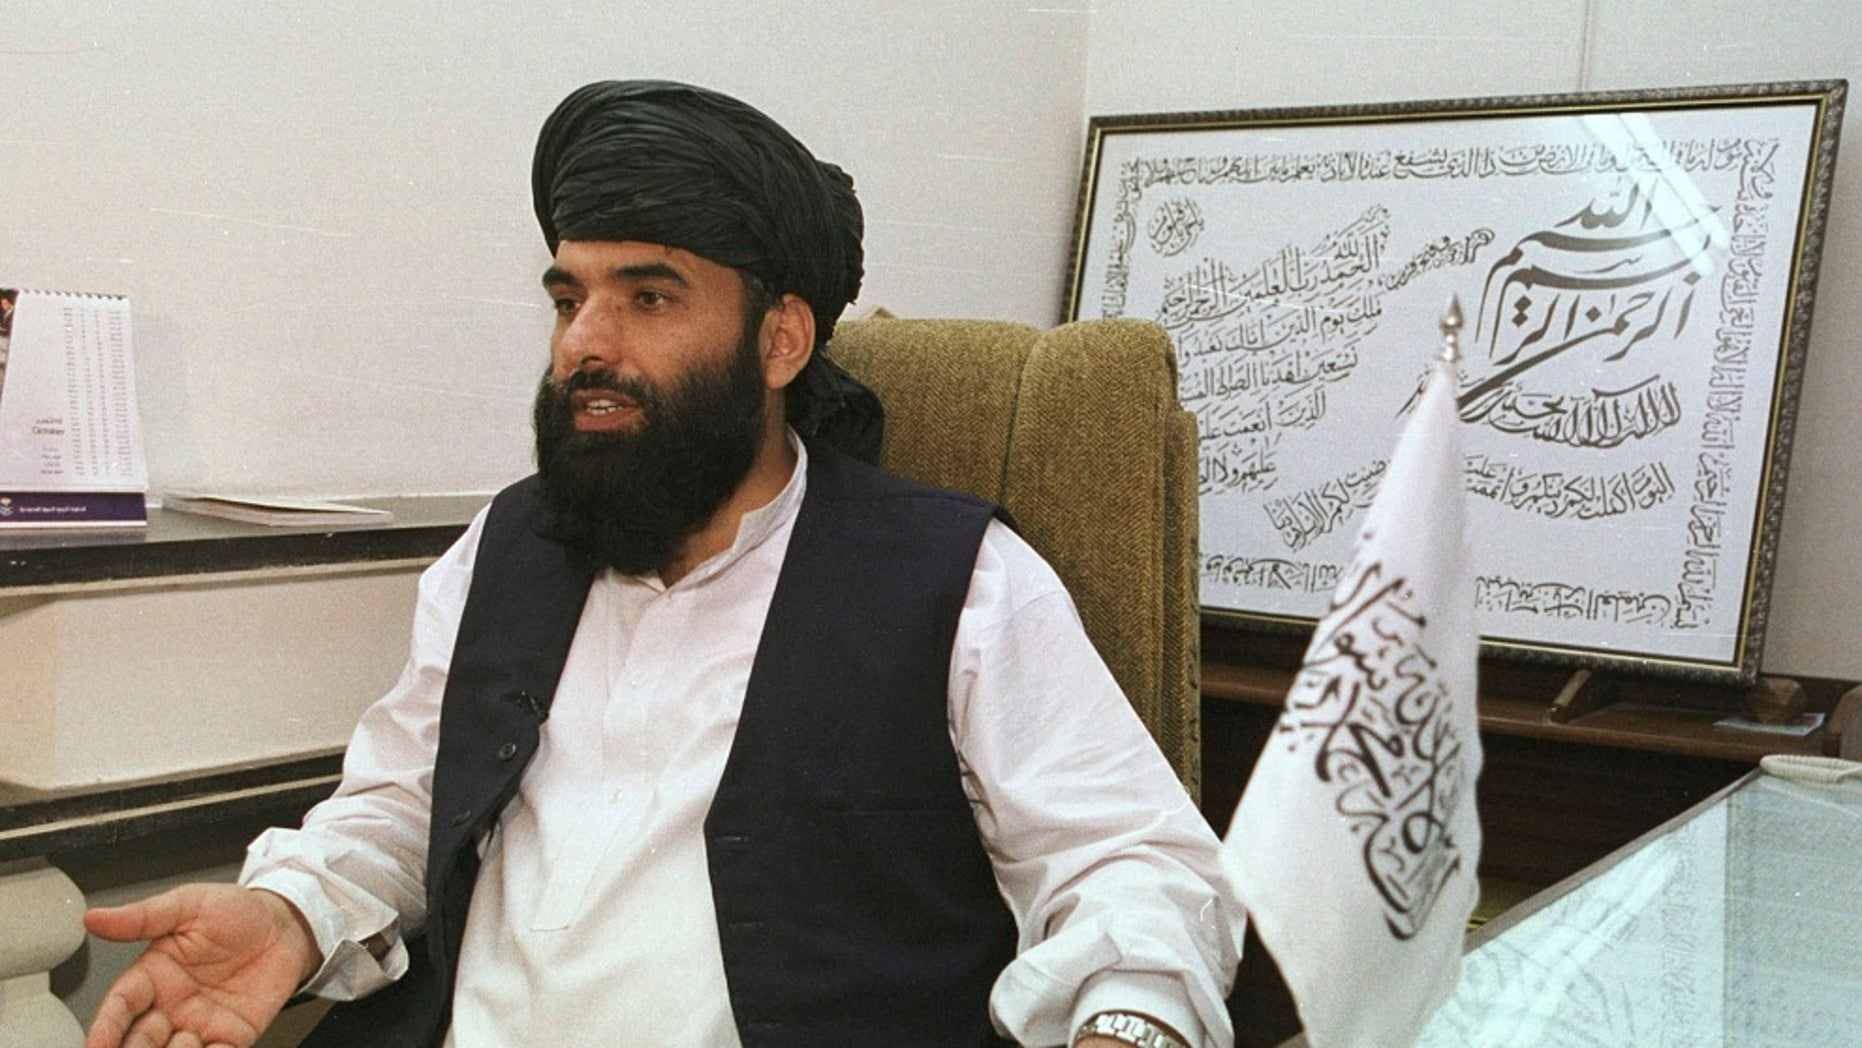 Westlake Legal Group AP19124301094638 Taliban says gap closing in talks with US for troop withdrawal Louis Casiano fox-news/world/conflicts/afghanistan fox-news/us/military fox news fnc/us fnc article 3e242cad-21d7-57ba-8cfc-367f94e0149a